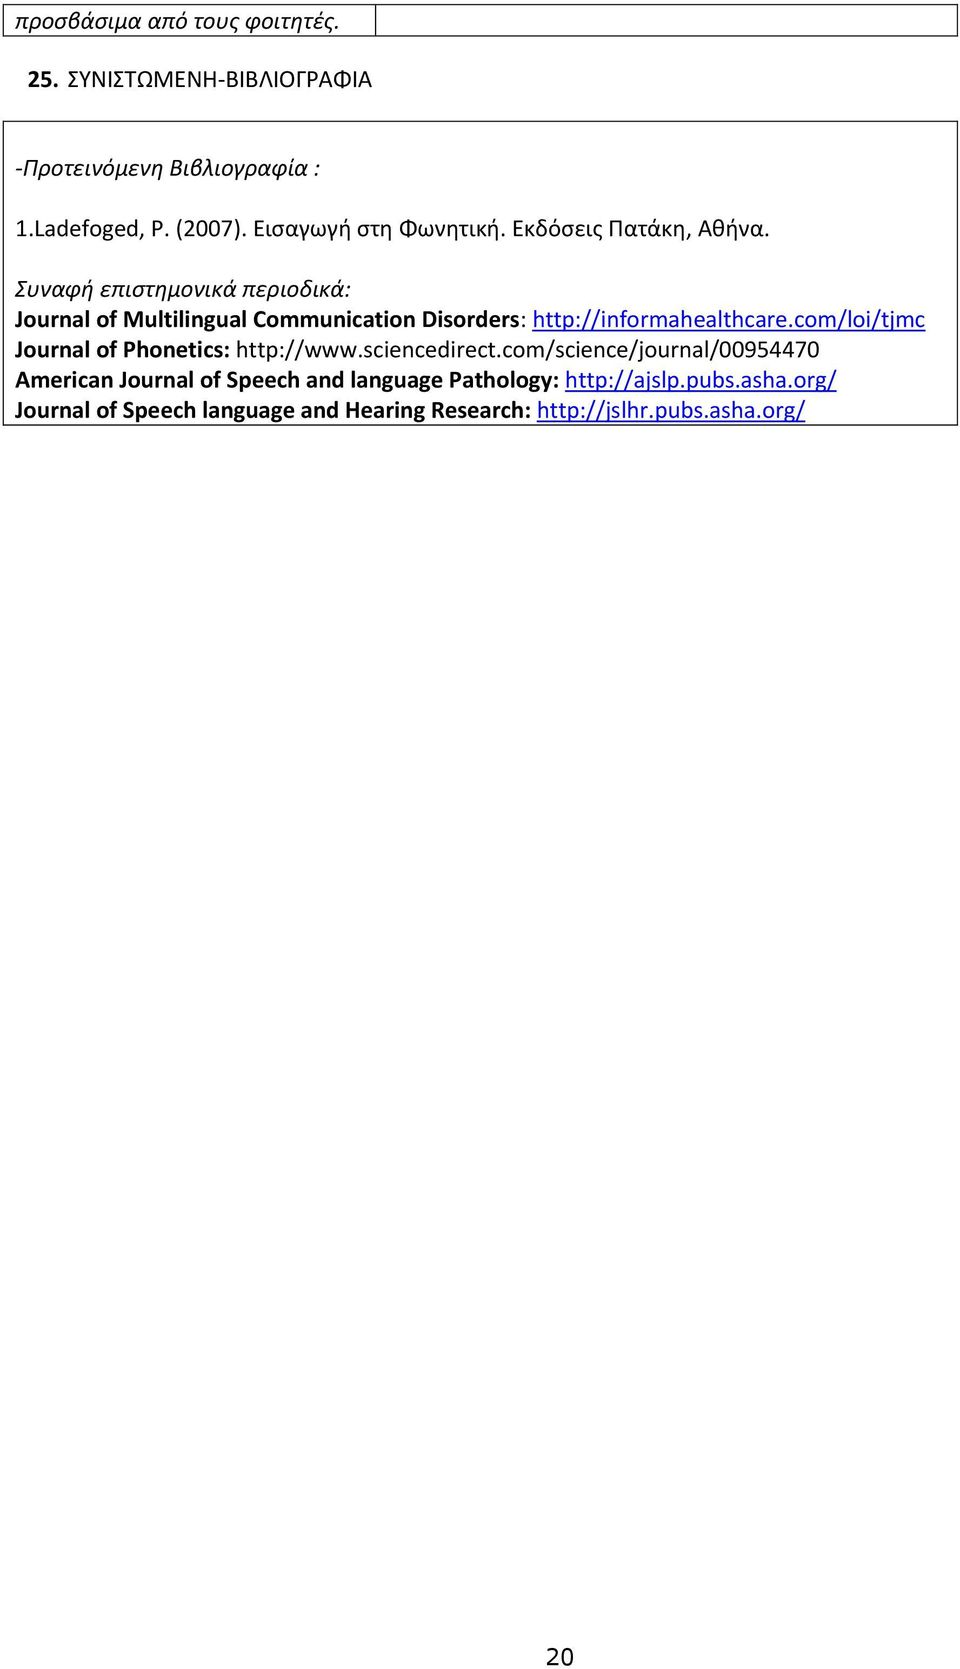 Συναφή επιστημονικά περιοδικά: Journal of Multilingual Communication Disorders: http://informahealthcare.